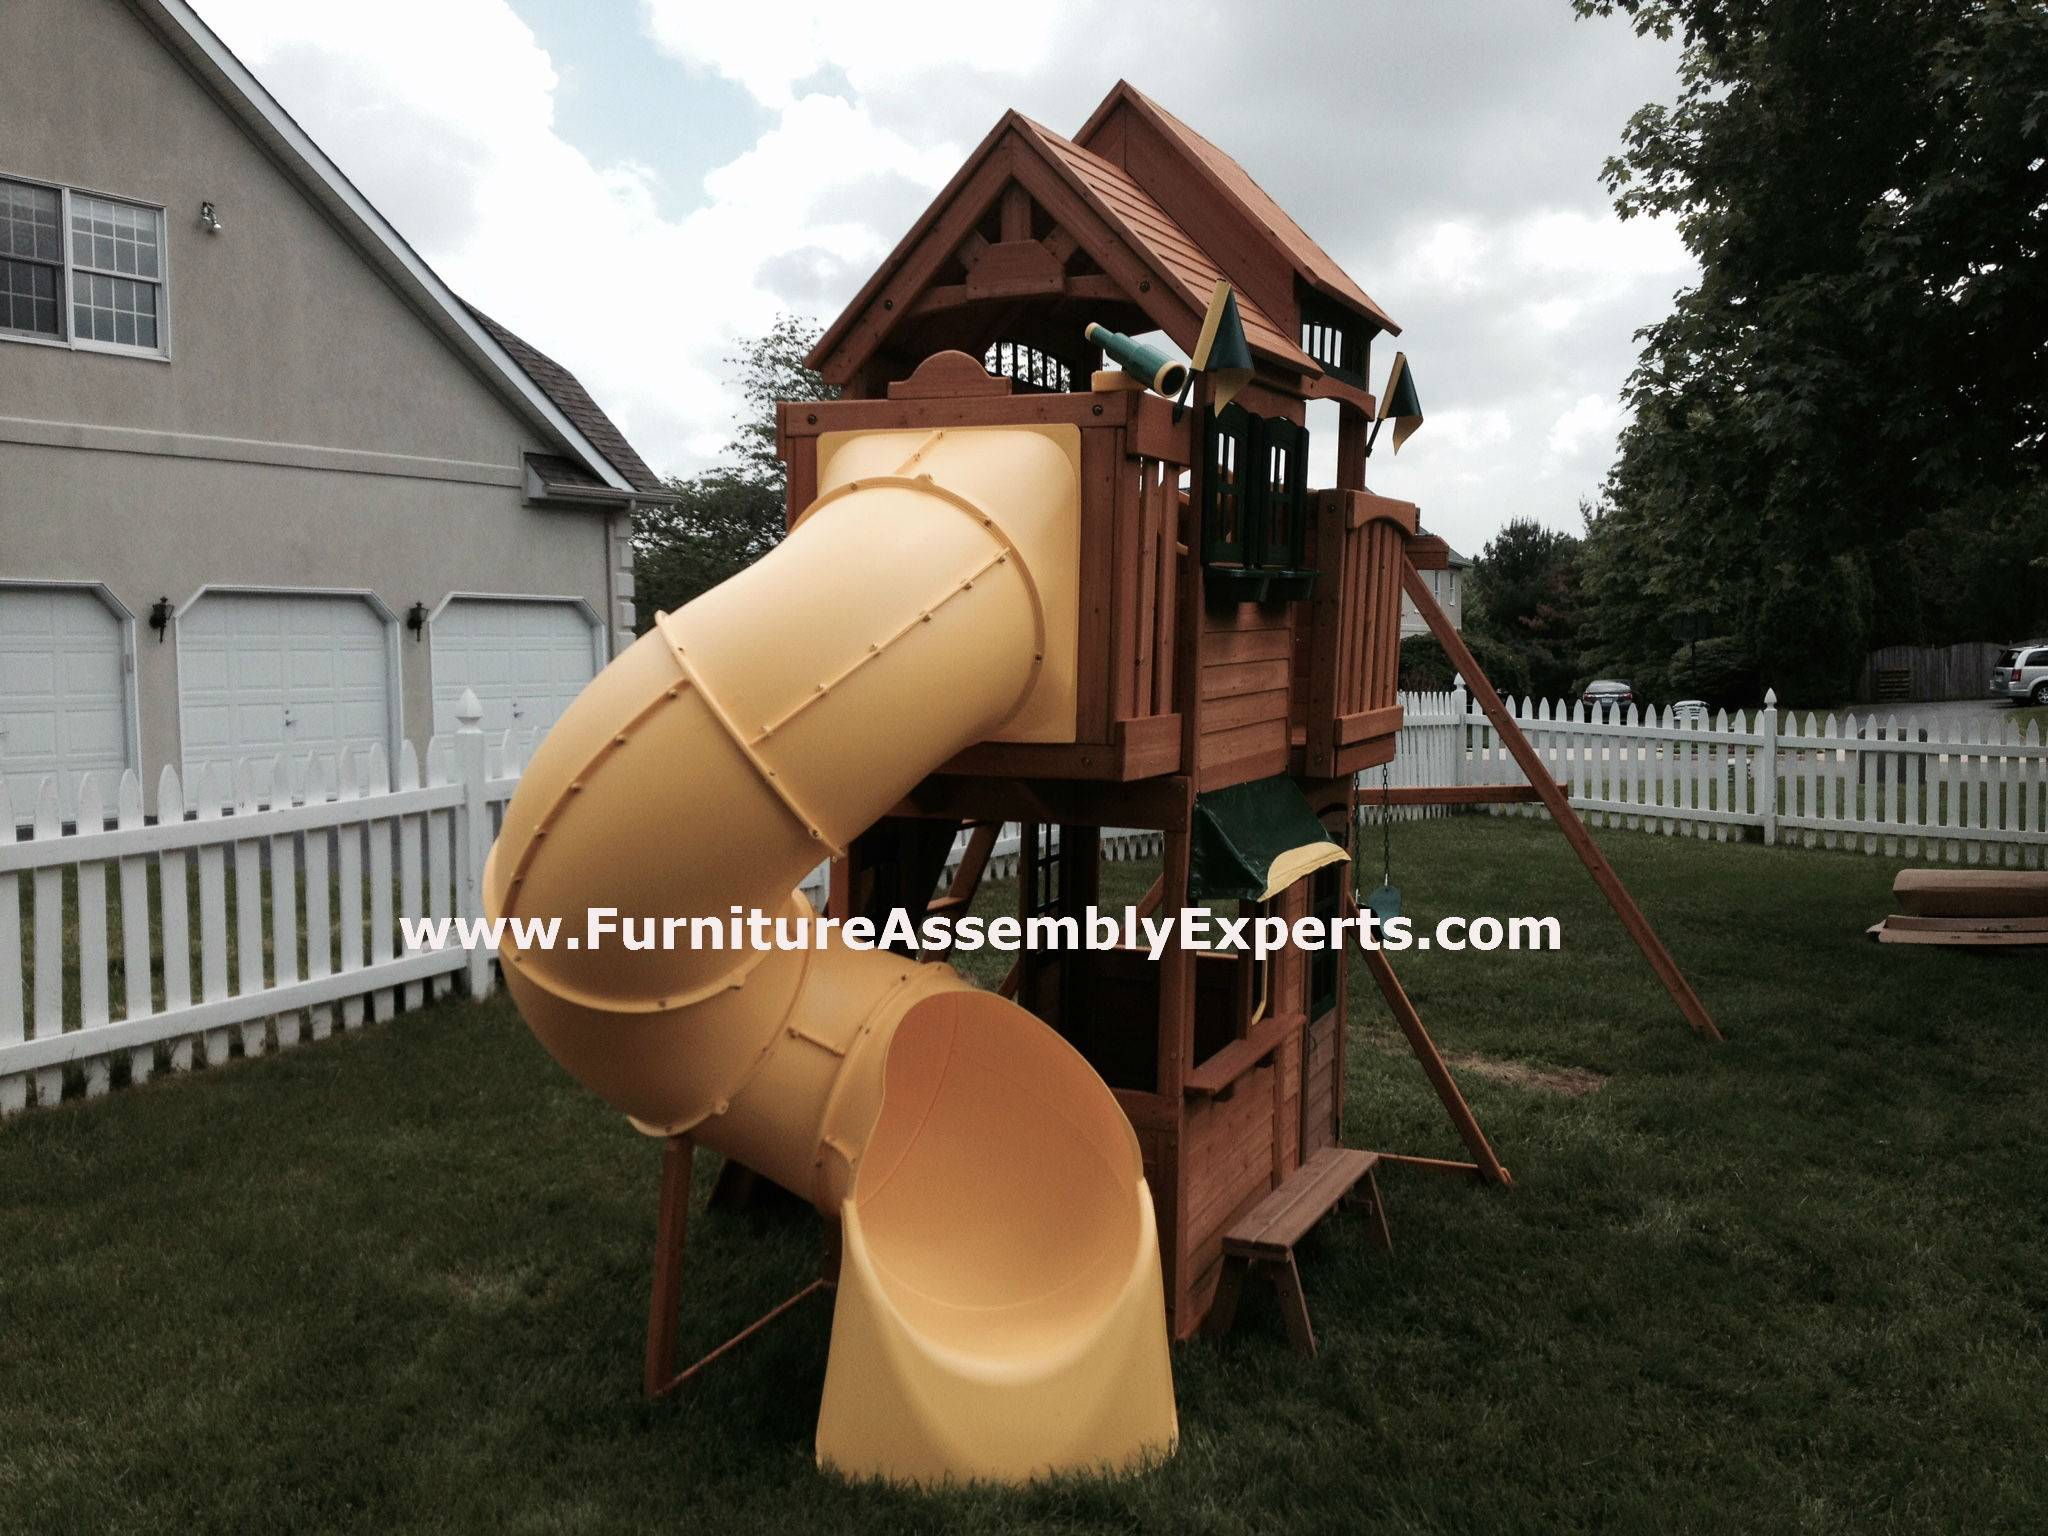 gorilla playset assembly service in vienna va